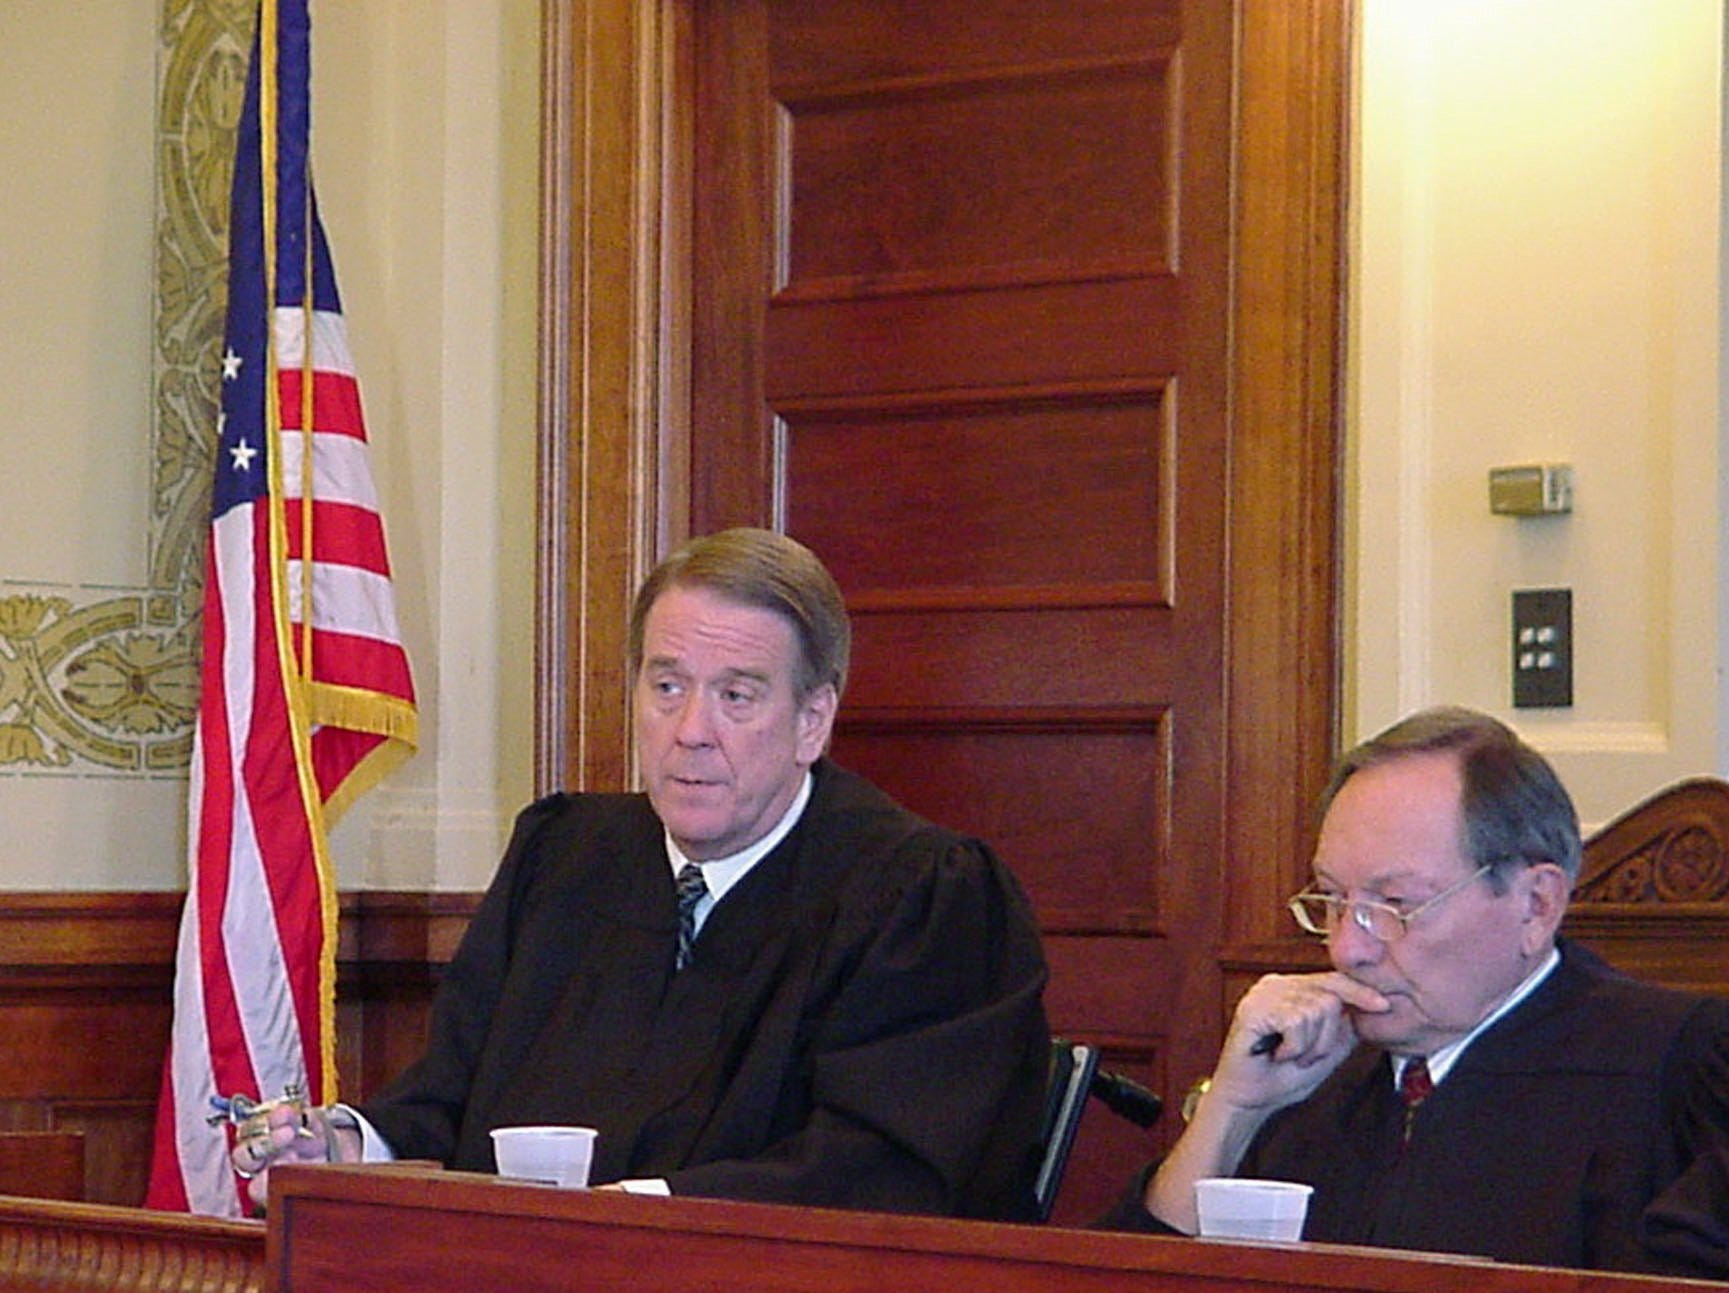 State Supreme Court Justices Steven L. Zinter, left, and Richard W. Sabers listen Tuesday, Nov. 18, 2003, at Pierre, S.D., during arguments in a case involving fees for court-appointed attorney Veronica Duffy. Duffy claims Seventh Circuit judges wrongfully reduced a bill she submitted for representing two criminal defendants.  (AP Photo/Joe Kafka)